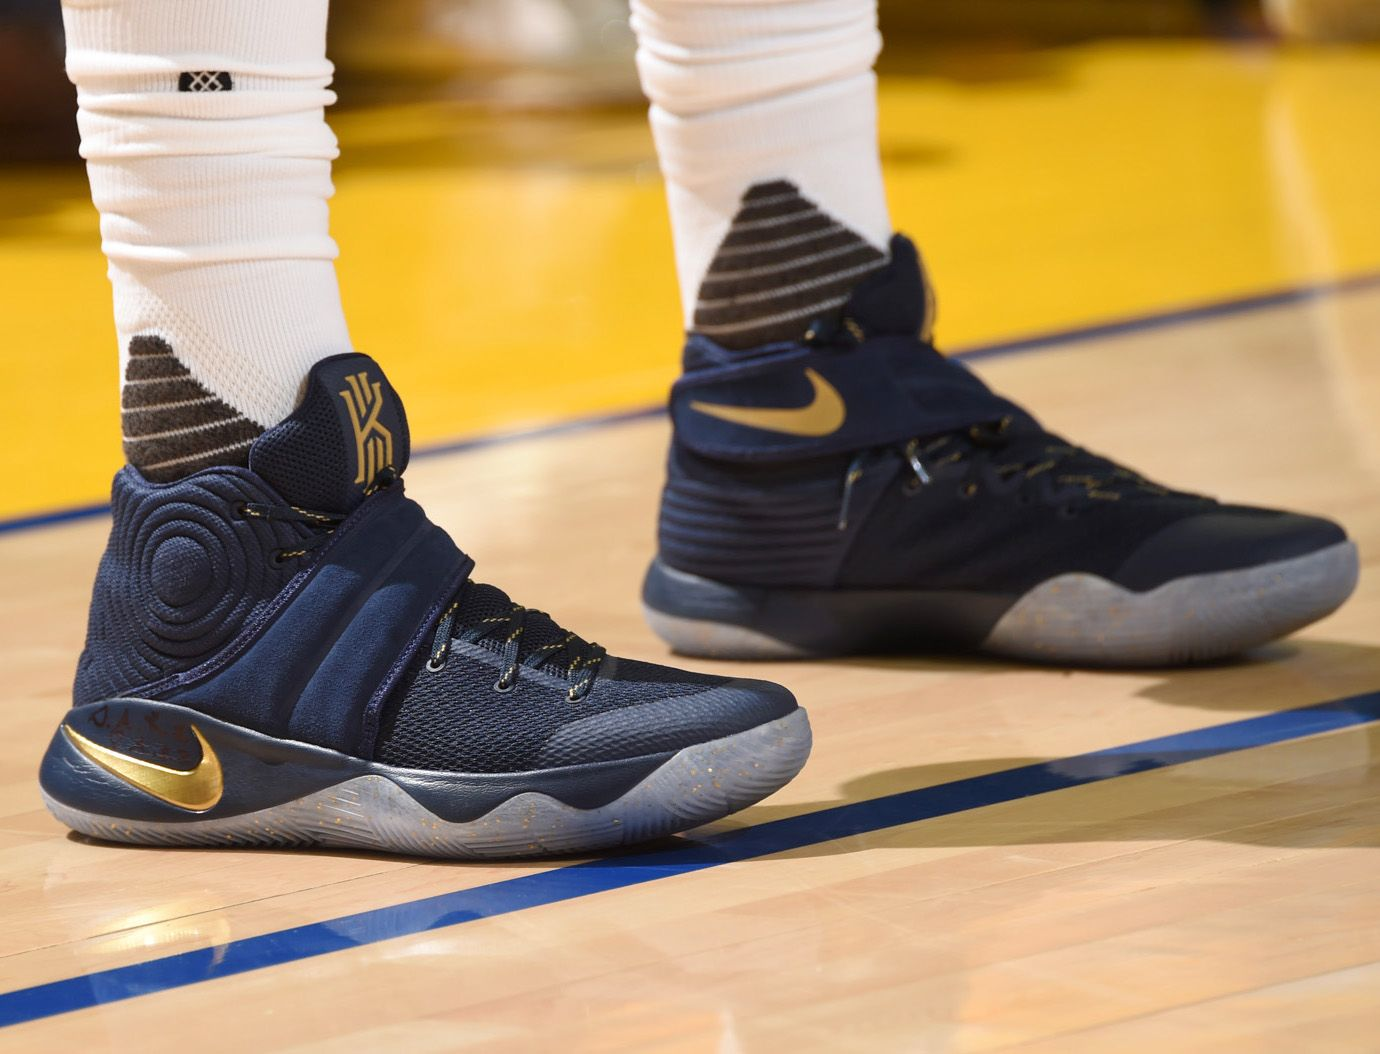 Kyrie Irving — Nike Kyrie 2 (Game 2)